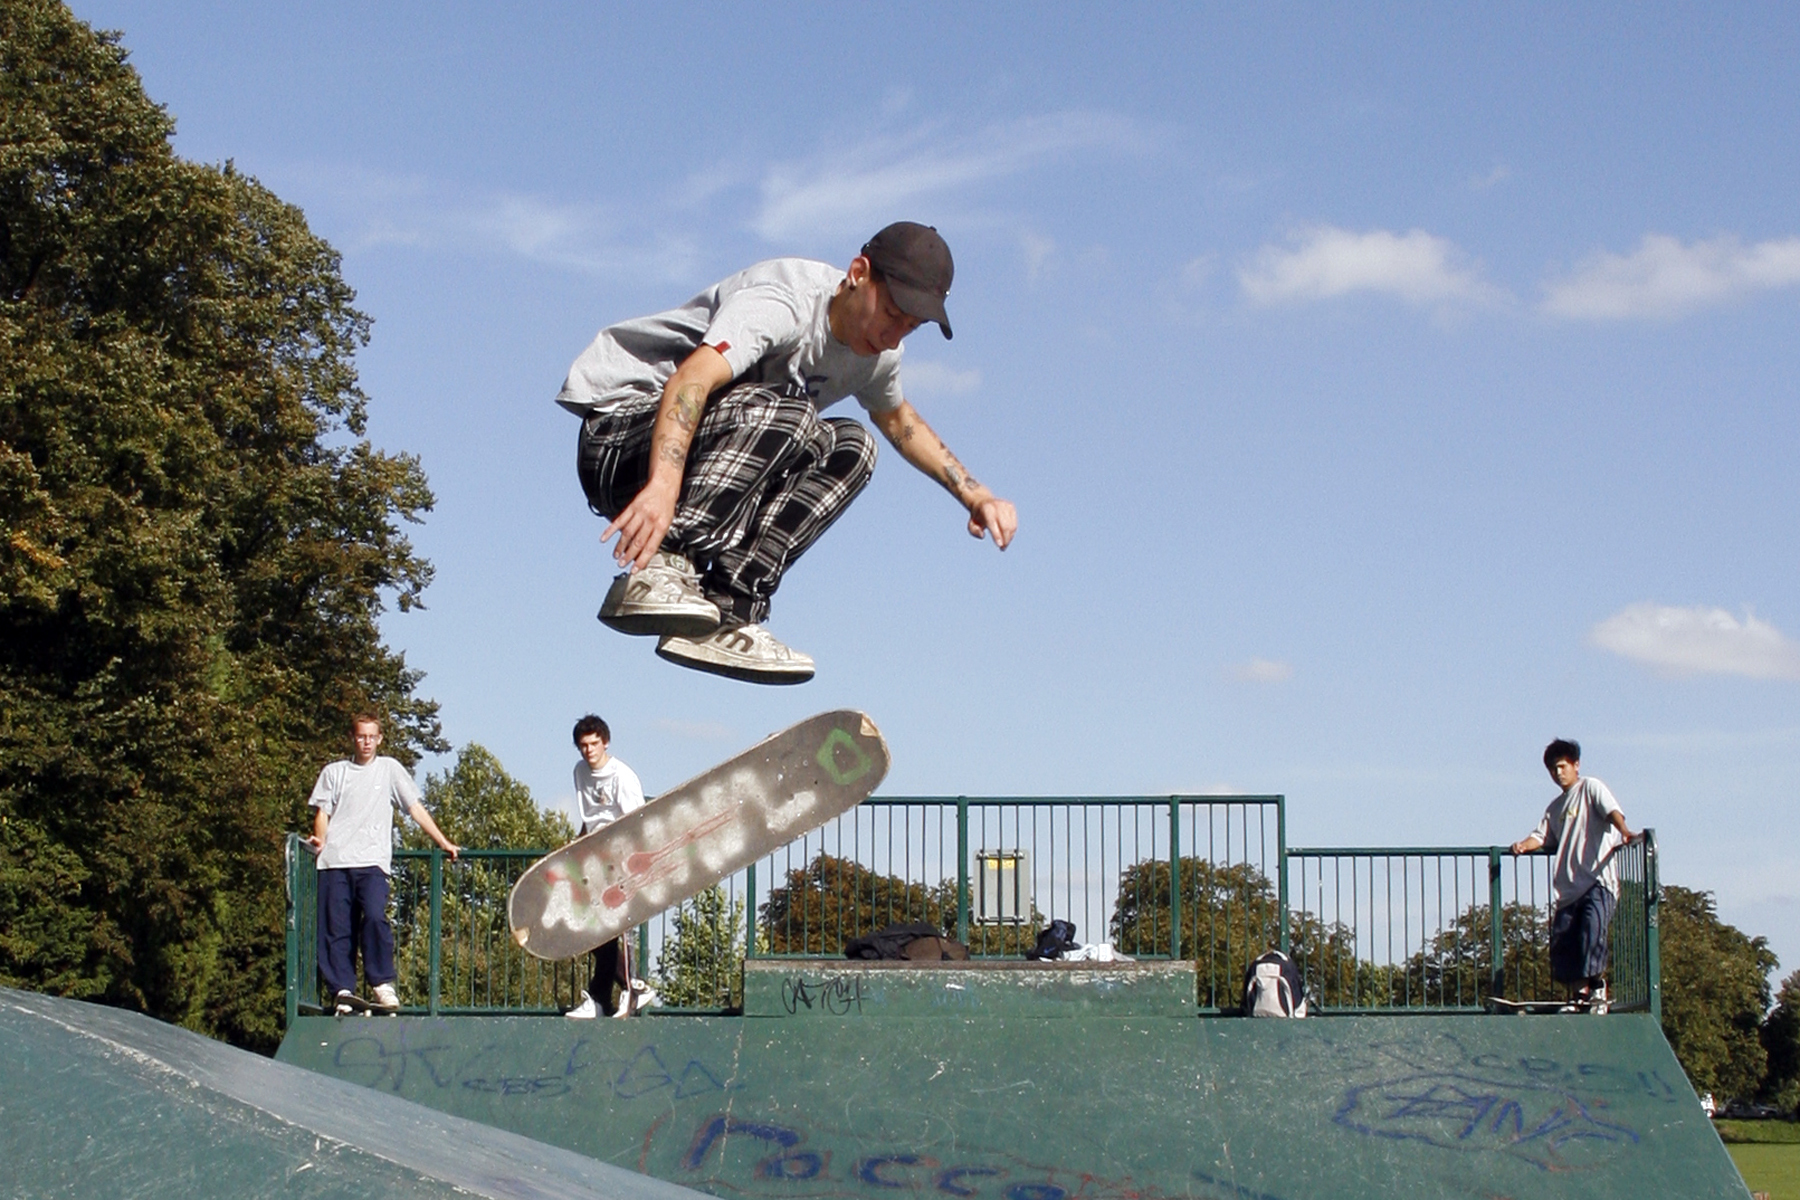 Skateboarding skates Sport jumping HD Wallpaper